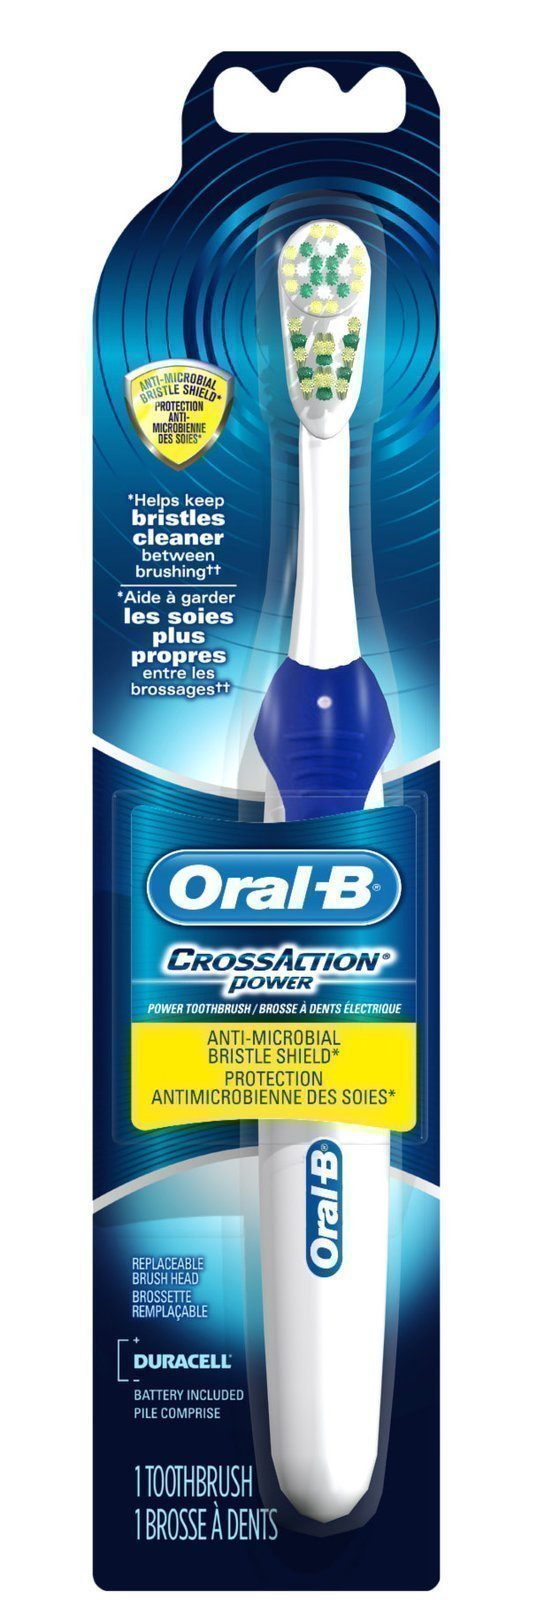 cvs  oral b cross action power toothbrush   49